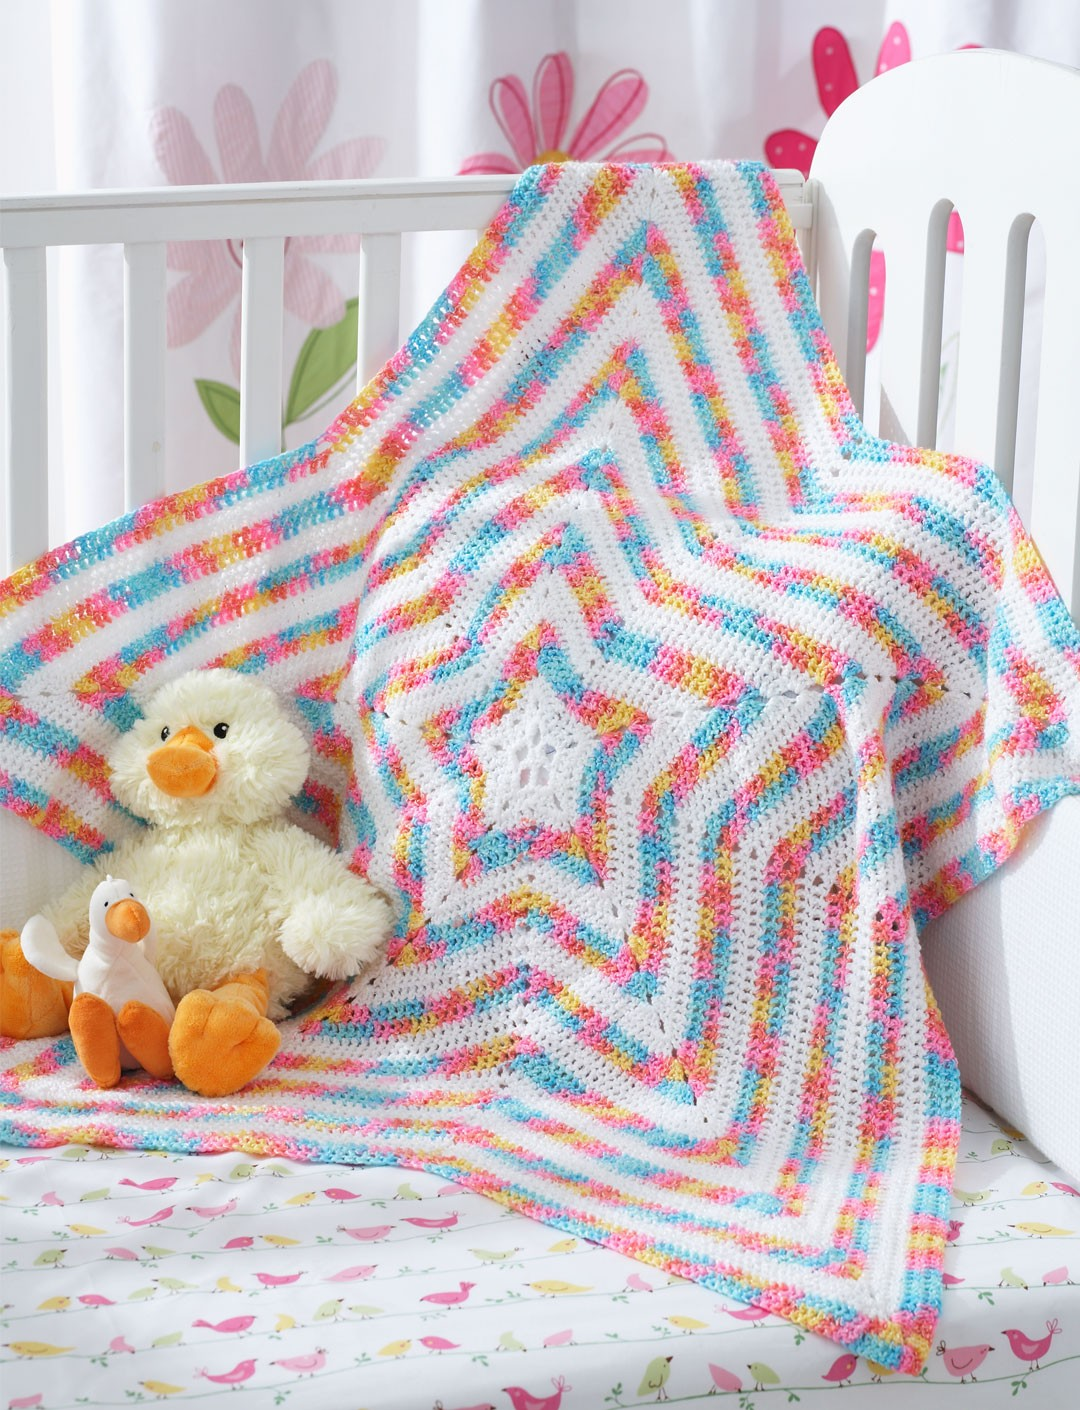 Bernat Star Blanket, Crochet Pattern Yarnspirations